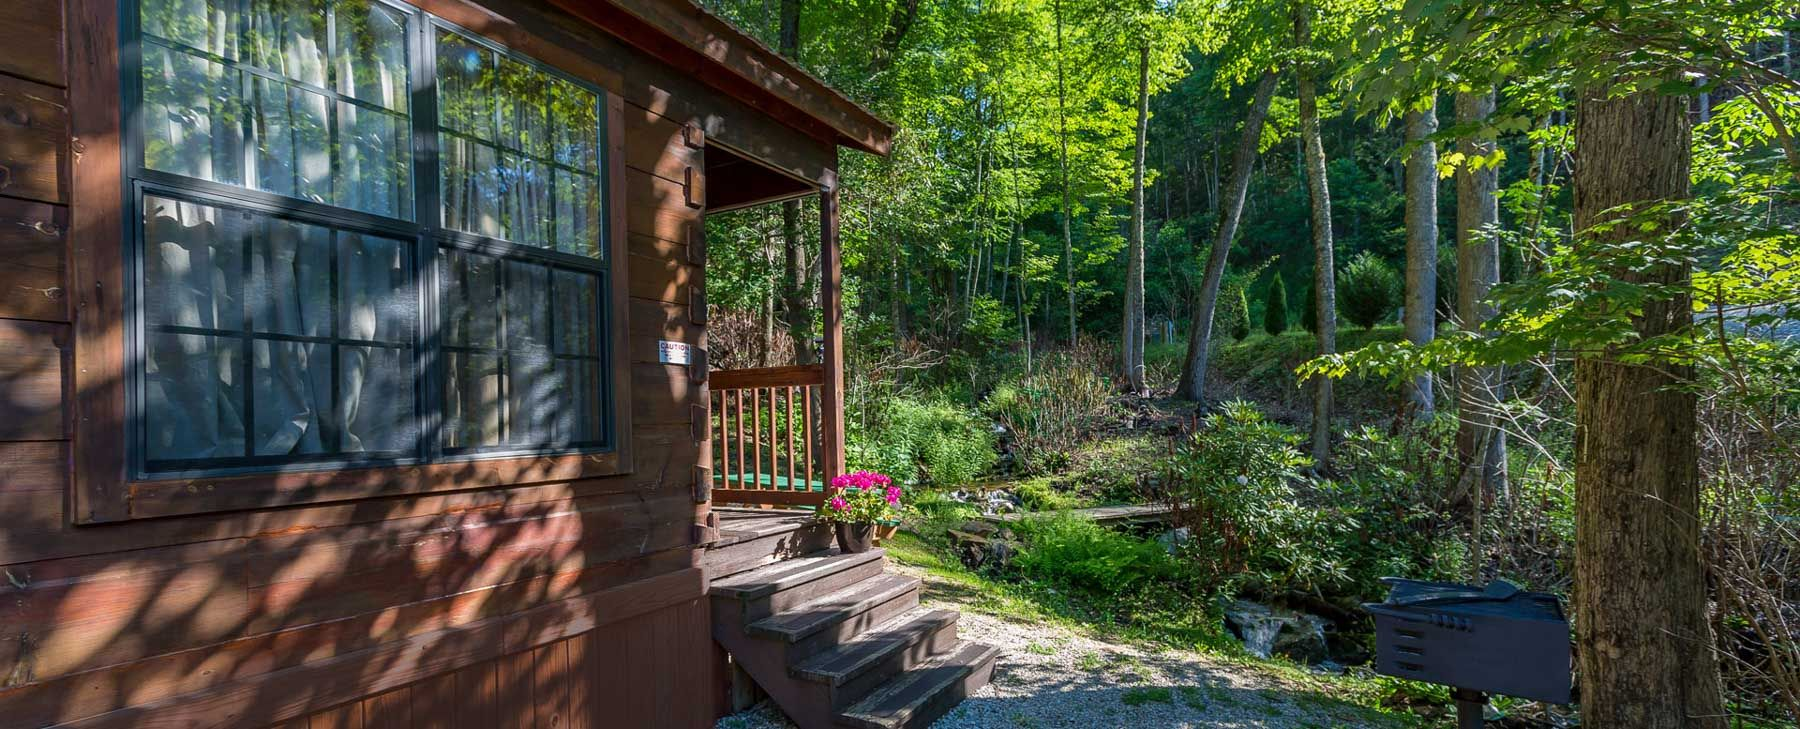 Enjoy a luxury camping destination at chelokee cove cabins